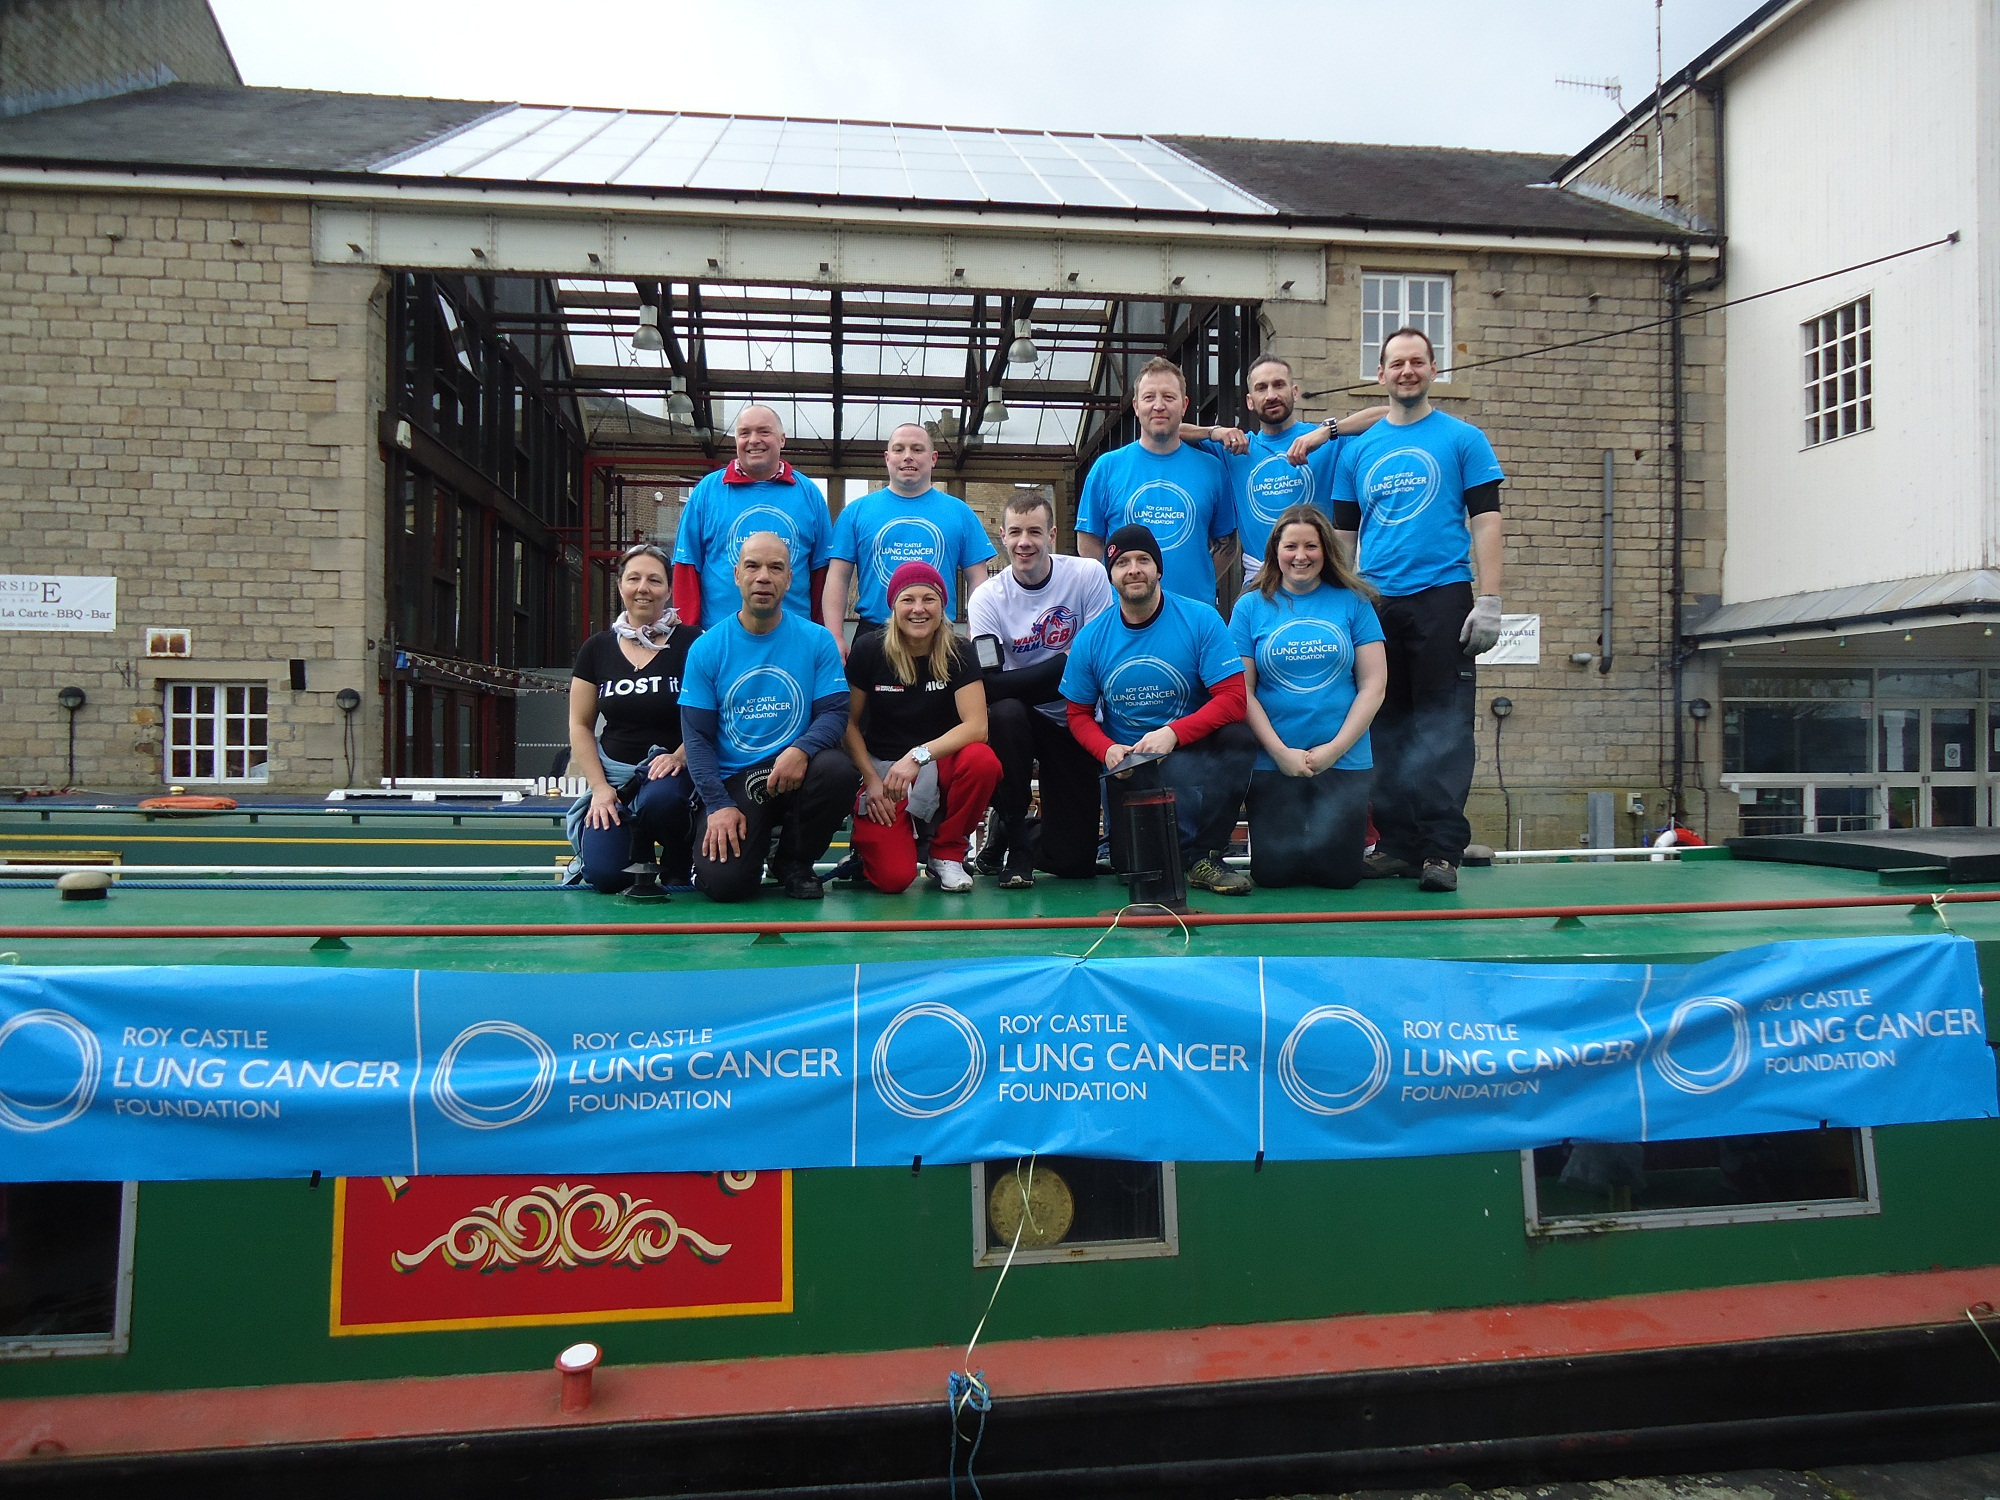 The team that will be pulling the barge from Liverpool to Leeds, via Keighley, in memory of lung cancer victim Julie Robinson